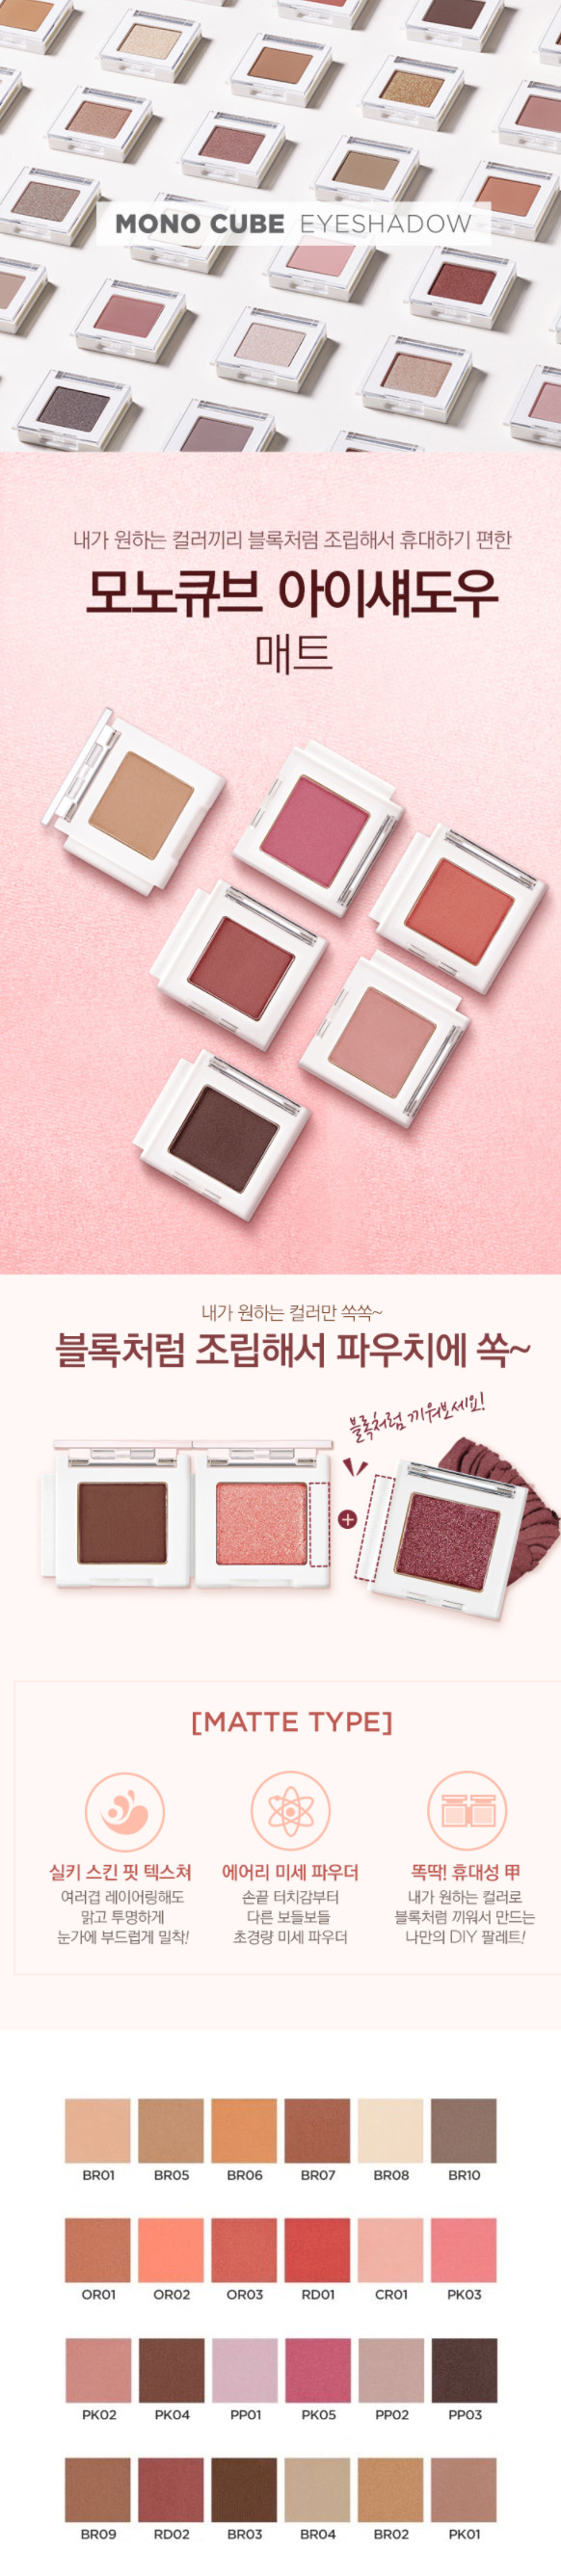 [The Face Shop] MONO Cube Eyeshadow (Matte) 1 7g